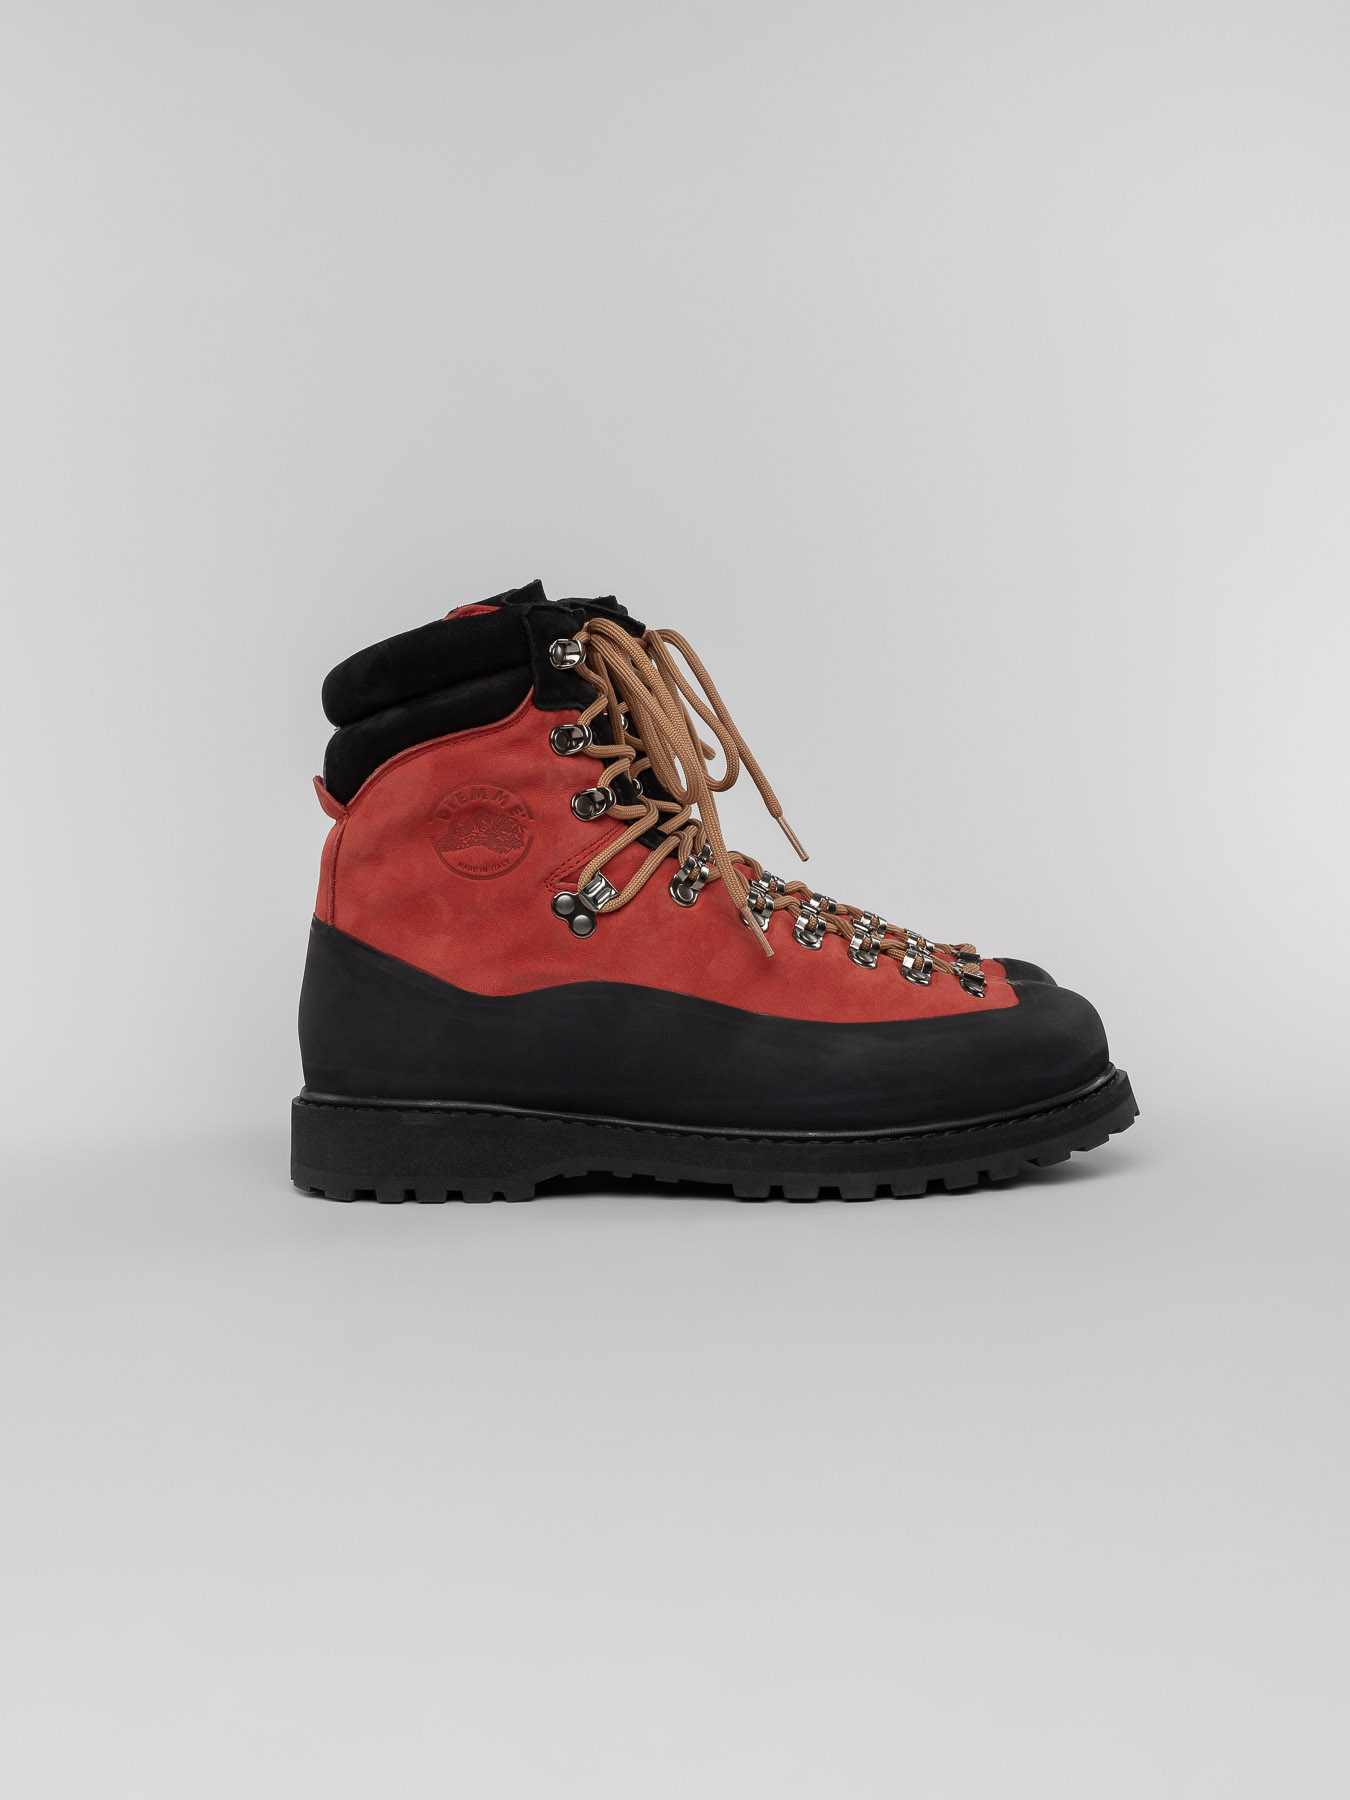 Diemme Everest Boots in Red